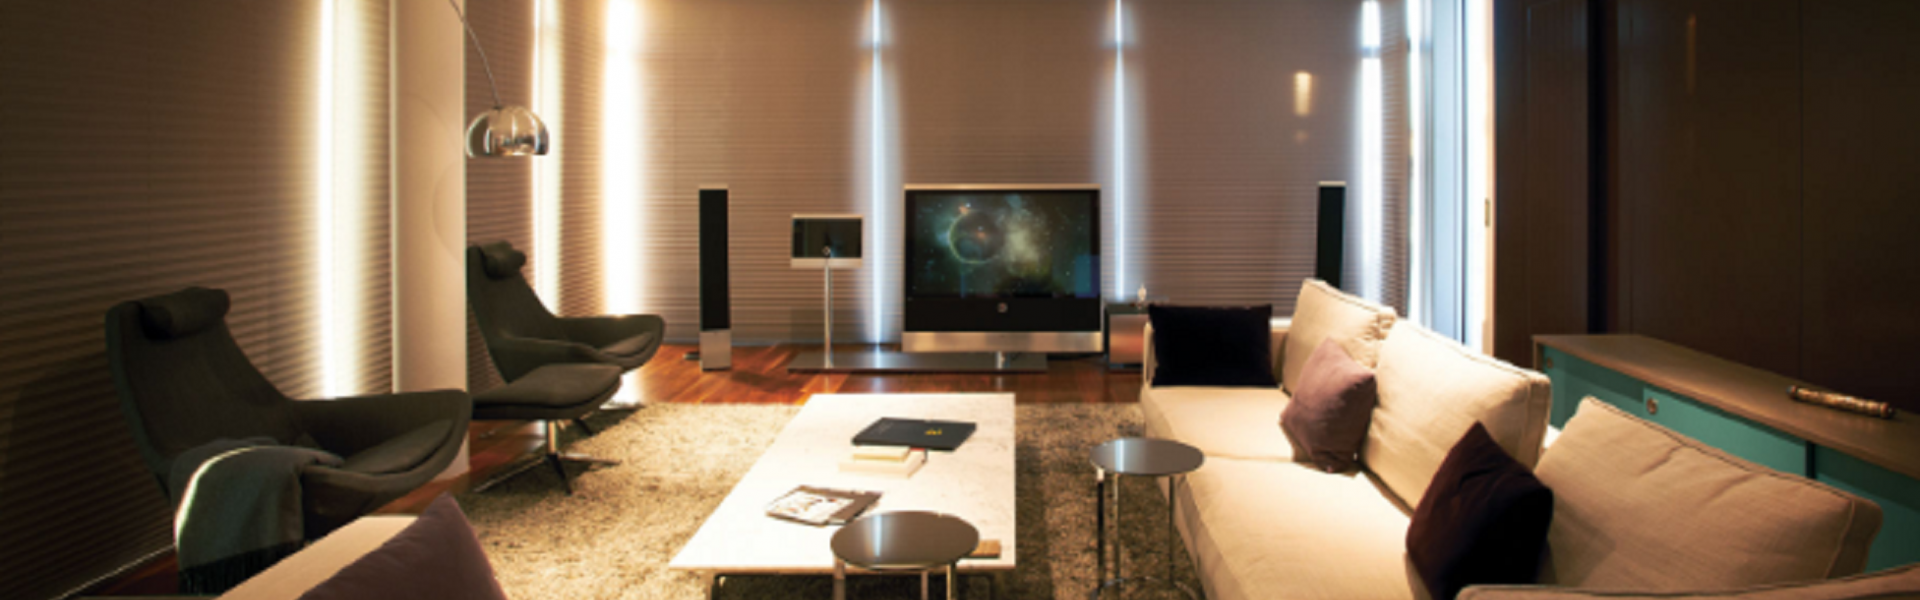 Smart home installation by CH Automation & Theatre Systems for Los Angeles